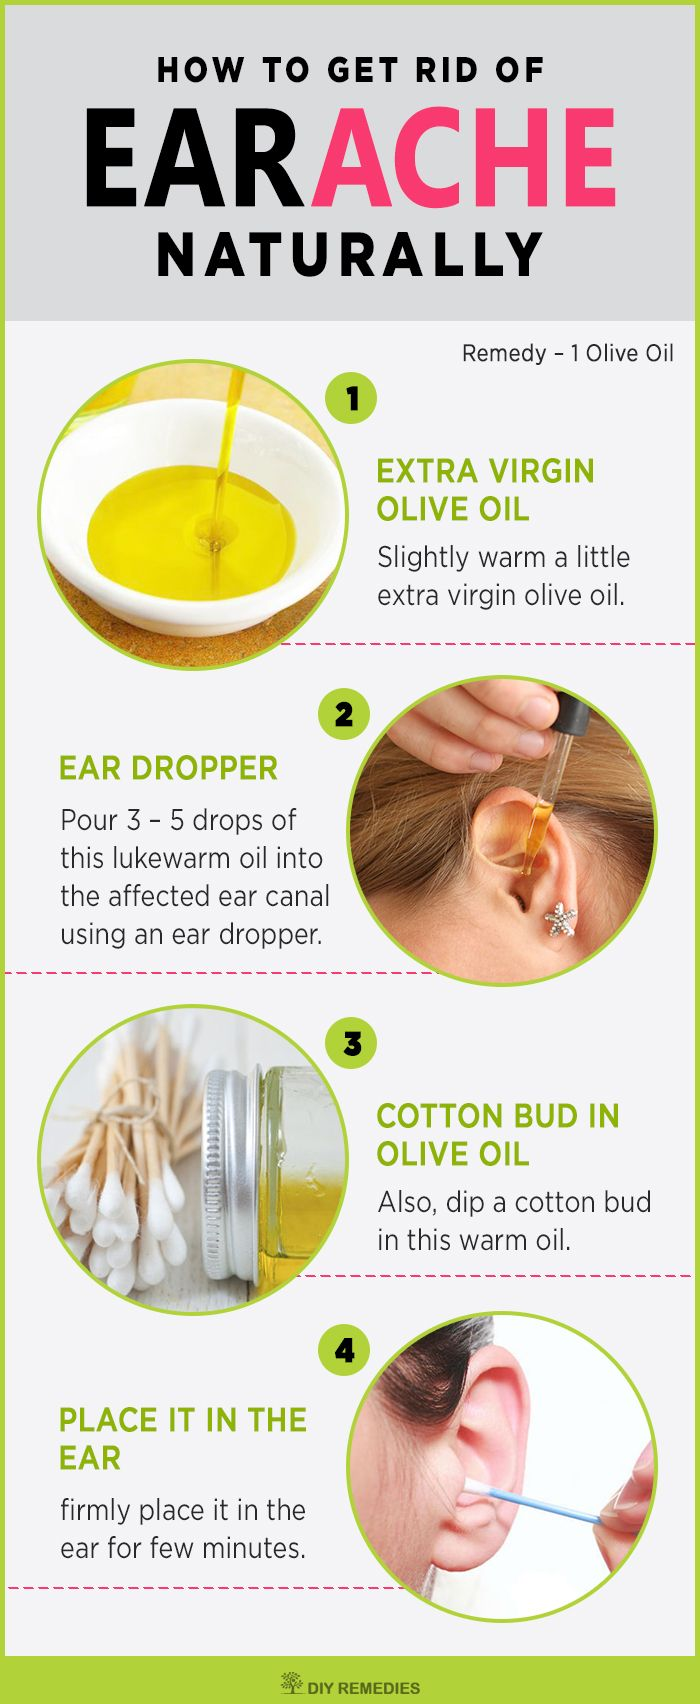 Olive Oil to Get Rid of Earache Naturally  Olive oil clears ear wax and thus eases irritation, pain or discomfort caused in the middle ear. It opens up the Eustachian tubes to relieve the pressure and drain out the fluid buildup to get rid of an earache. #OliveOil #Earache #Naturally #DIYRemedies